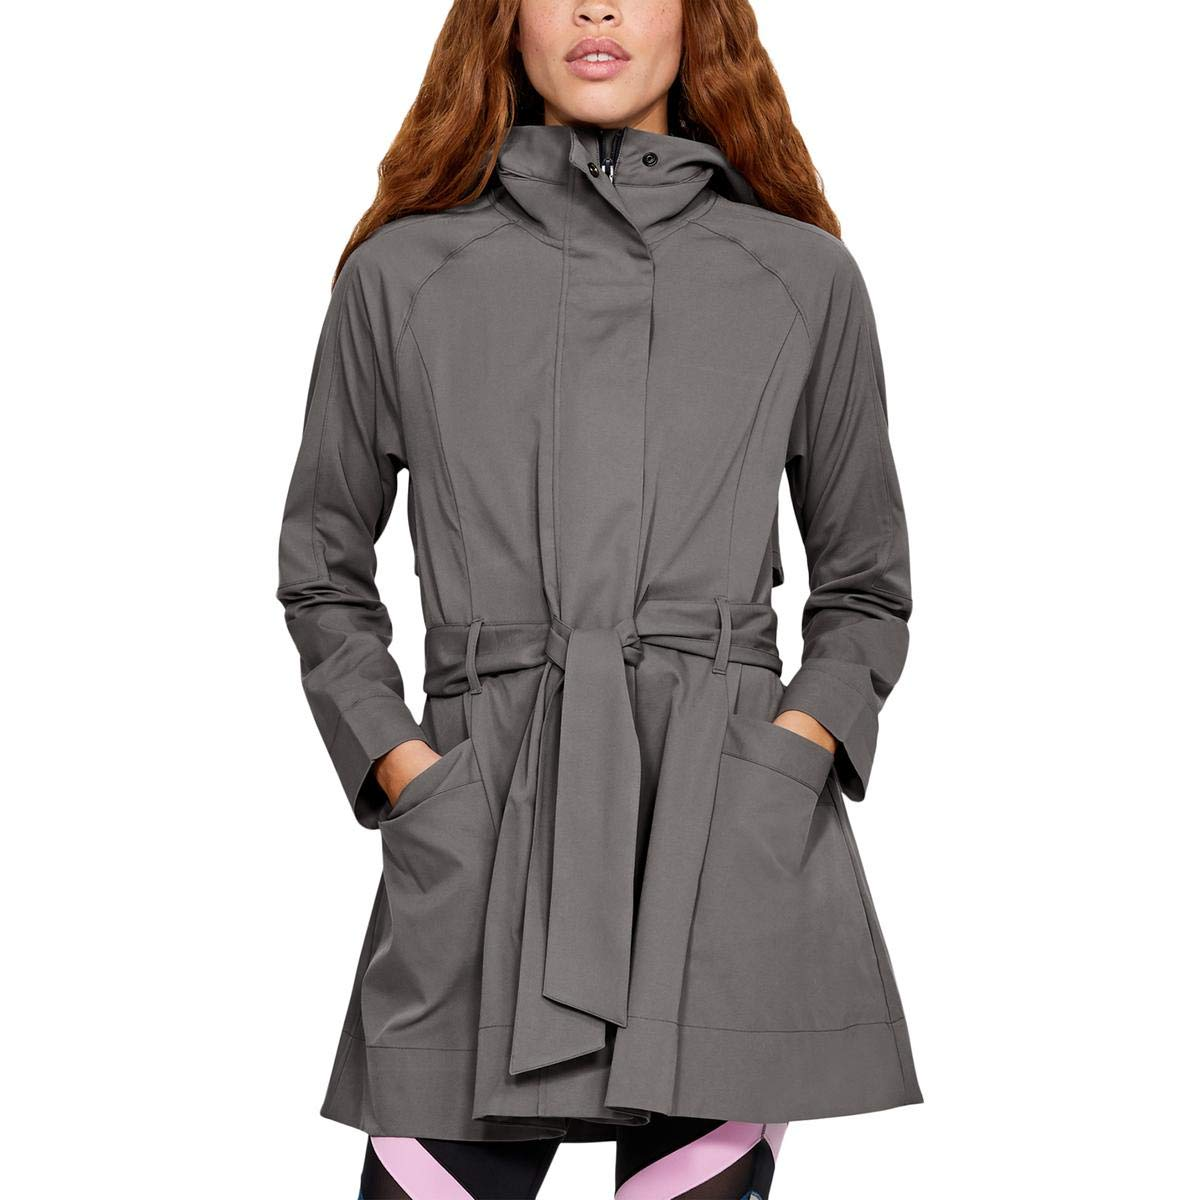 Under Armour Women's Misty Copeland Signature Woven Trench , Mink Gray (548)/Tonal, X-Small by Under Armour (Image #1)